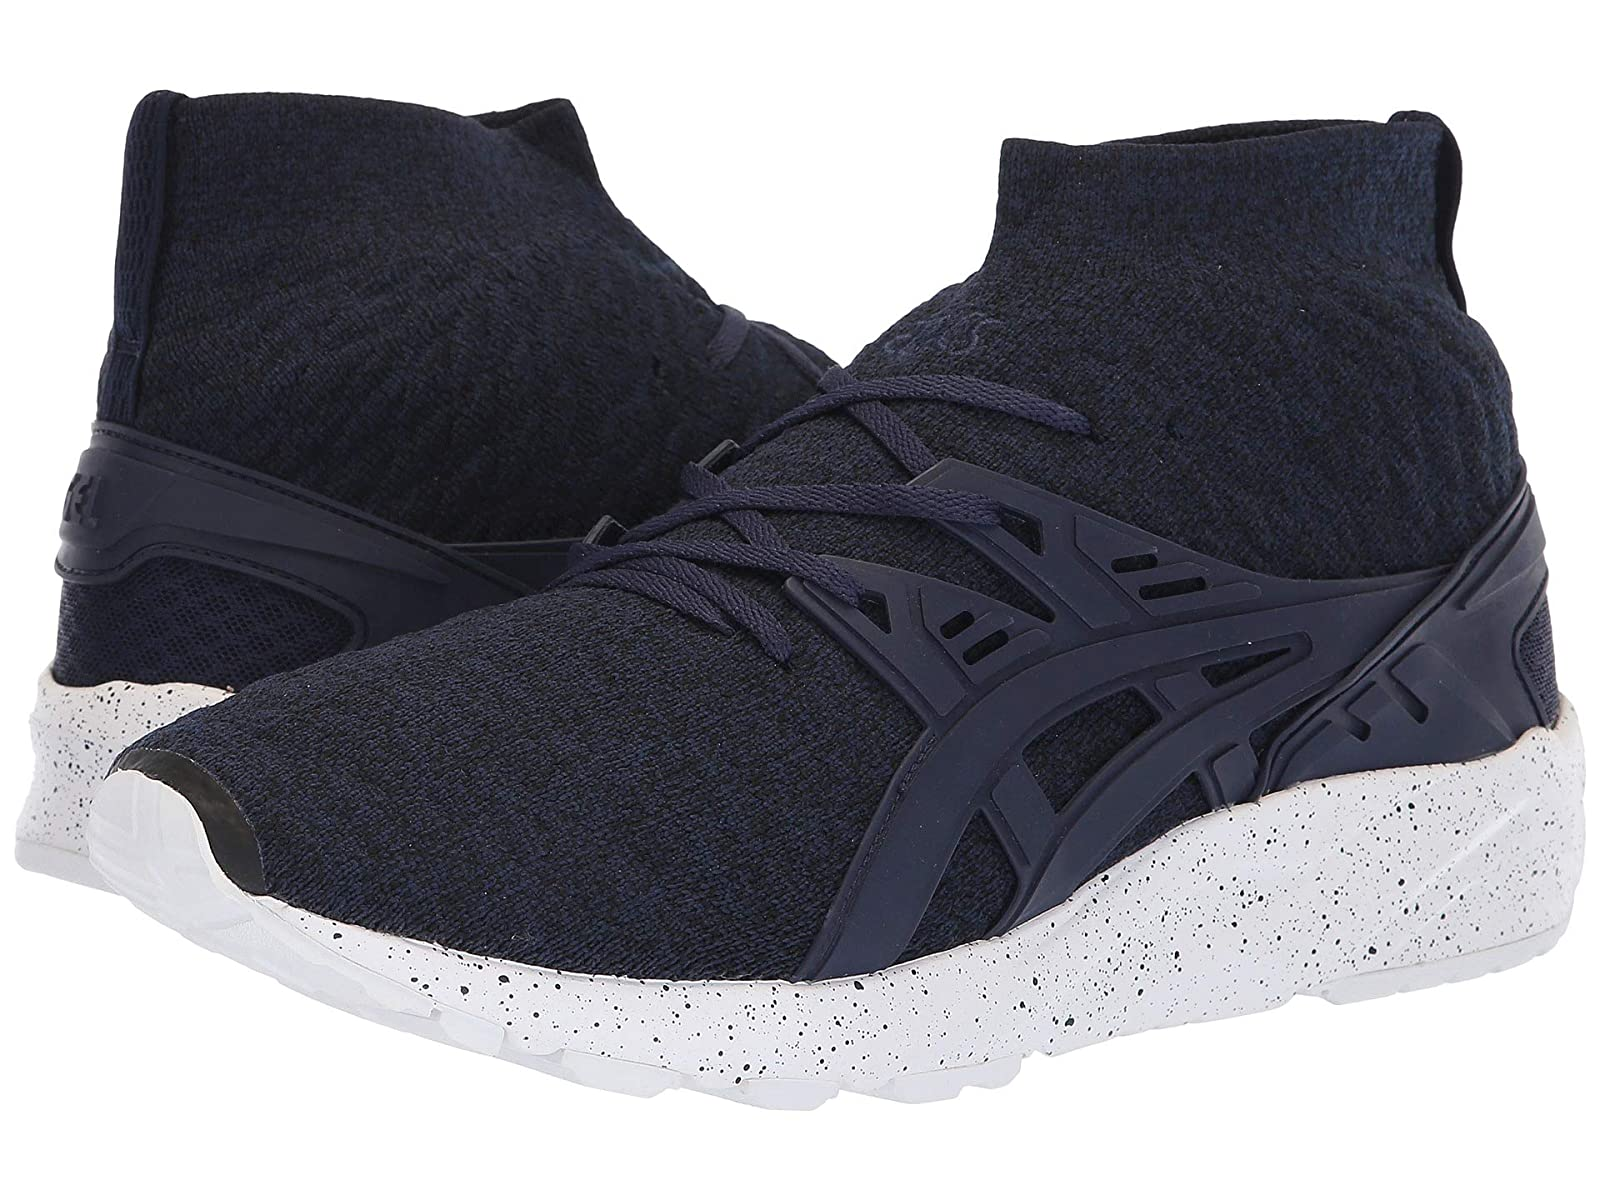 Onitsuka Tiger by Asics Gel Kayano quality Trainer Knit Man's